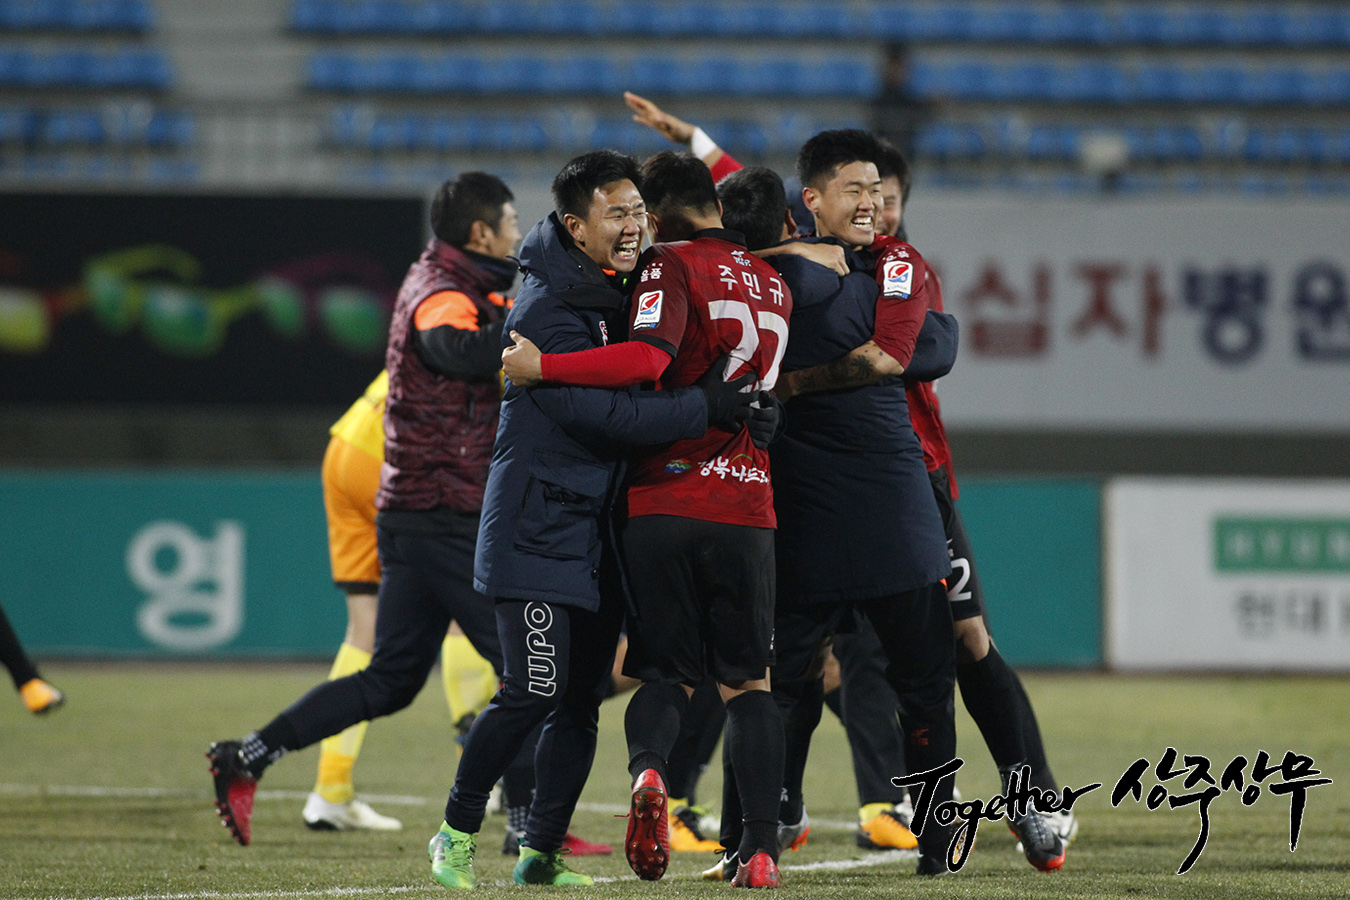 The K League United Elimination Game 2018